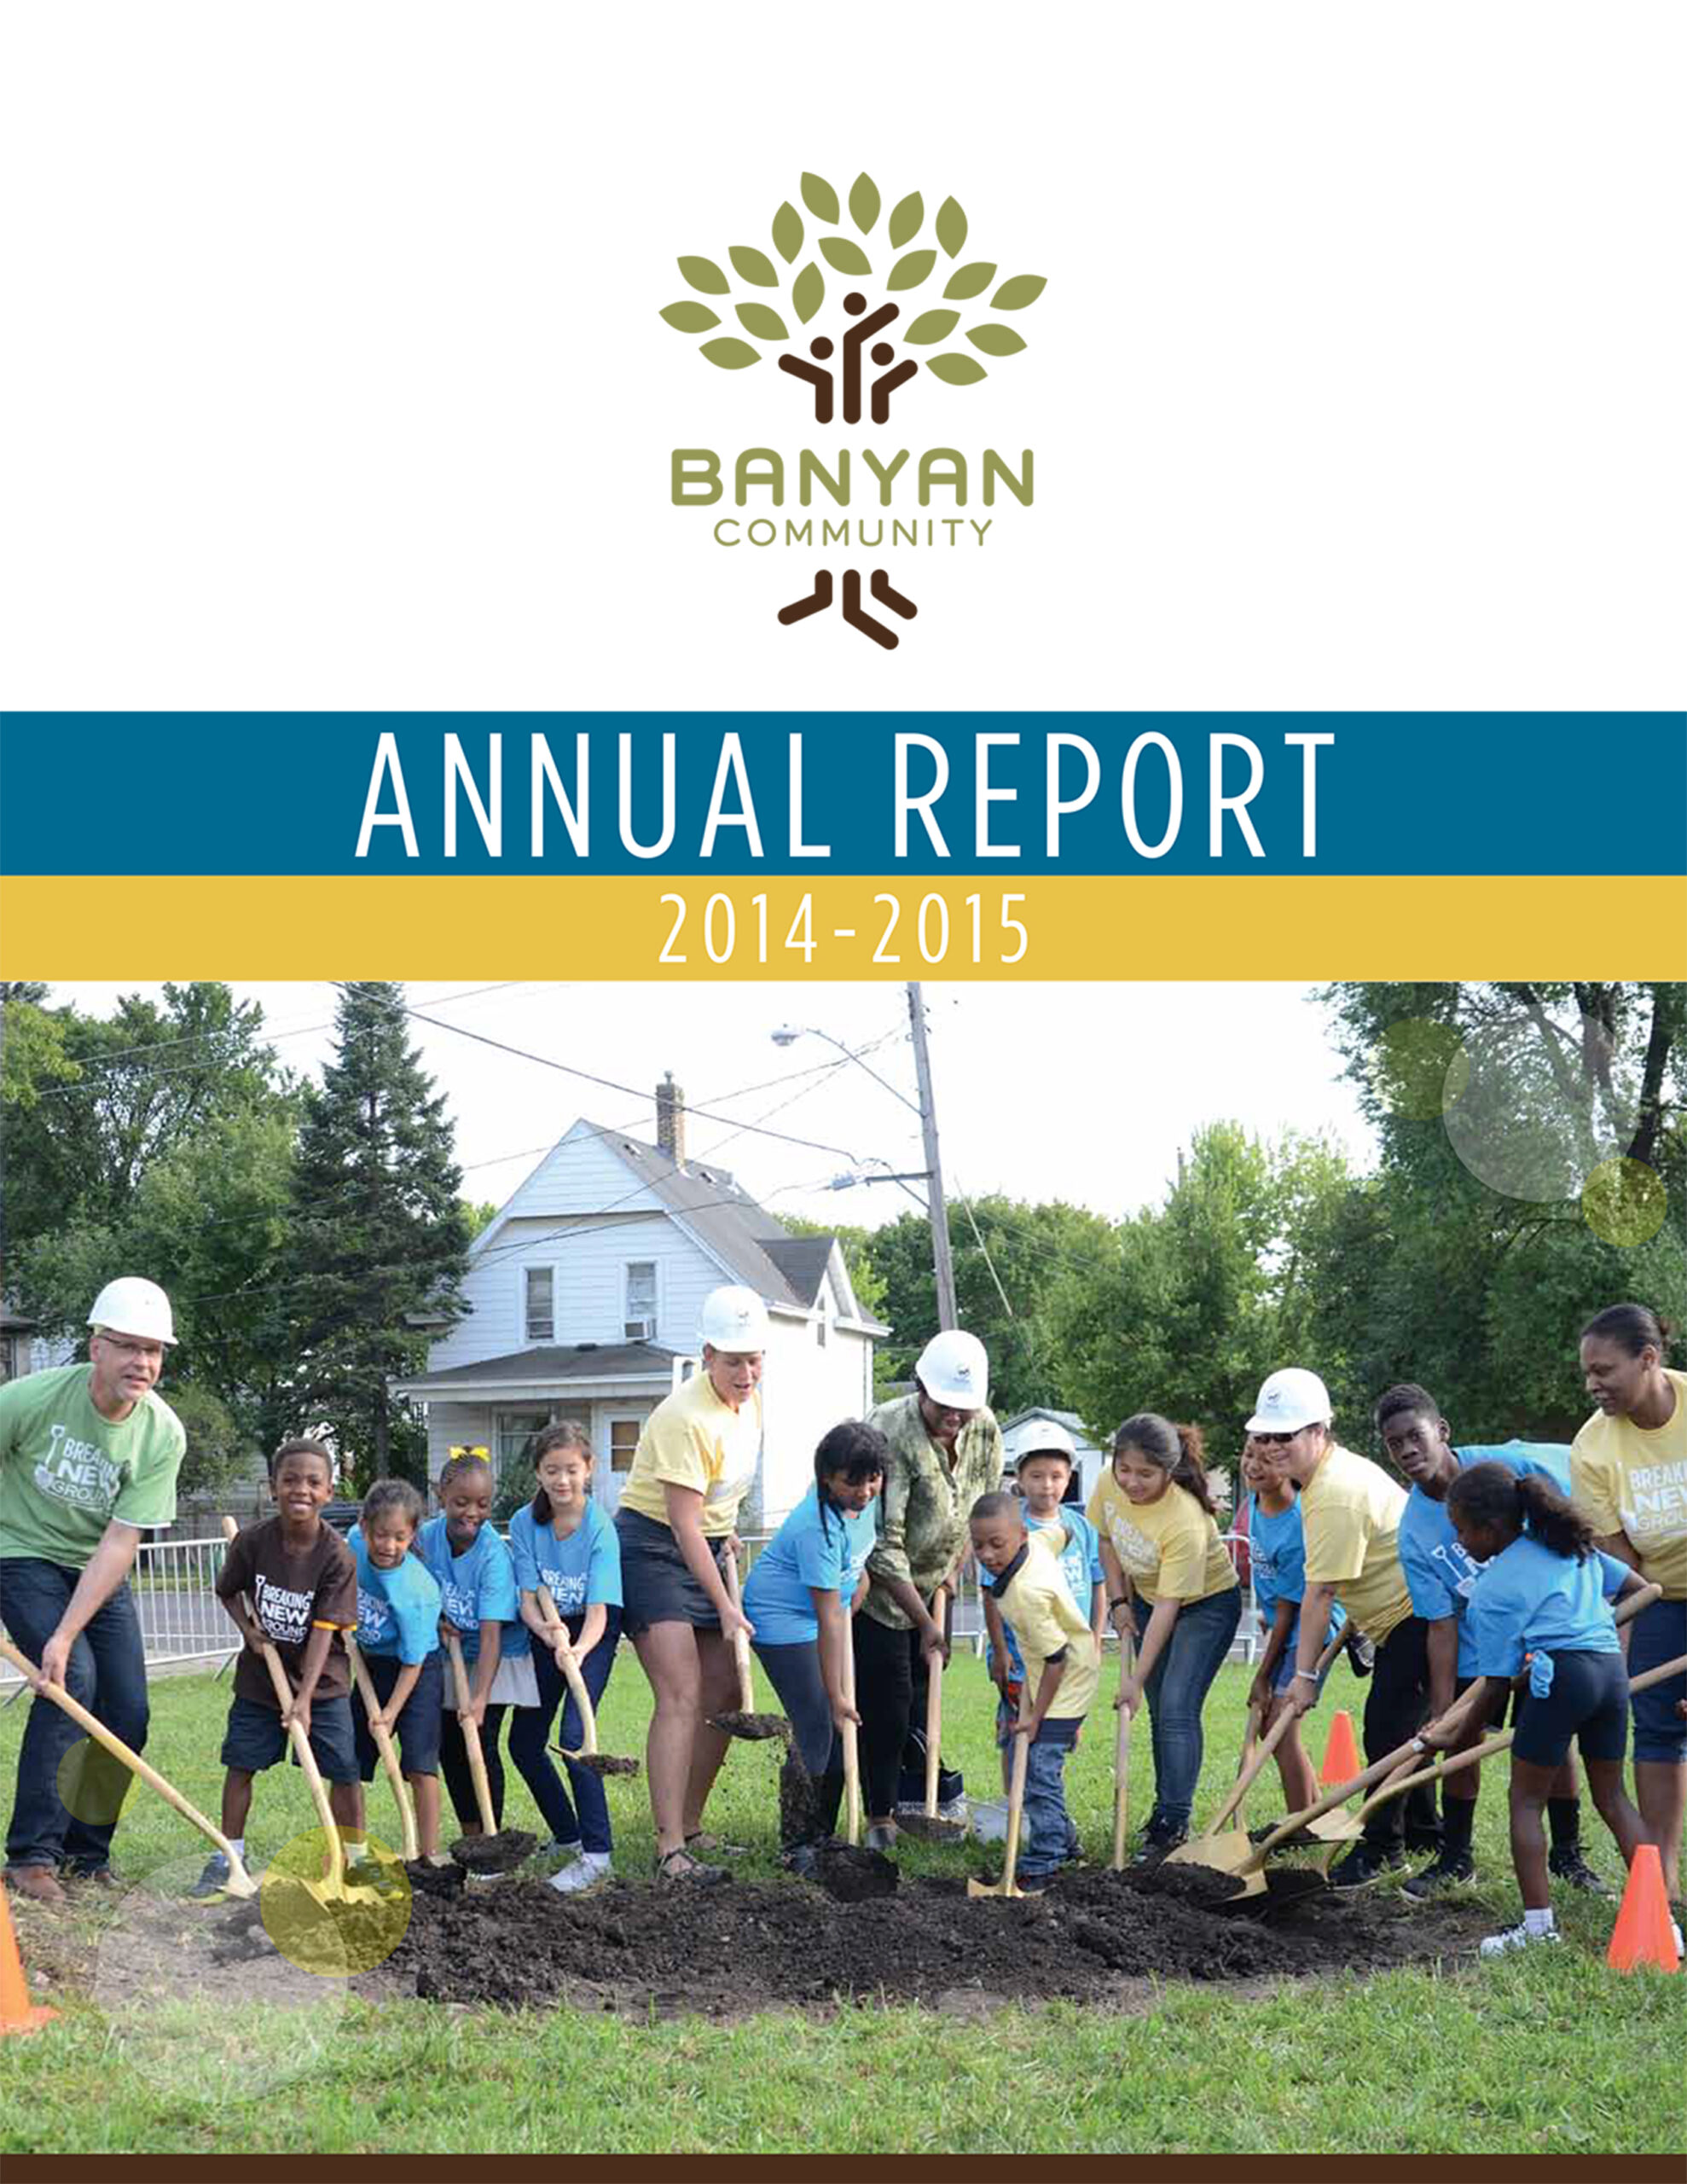 Banyan Community's 2014-2015 annual report cover